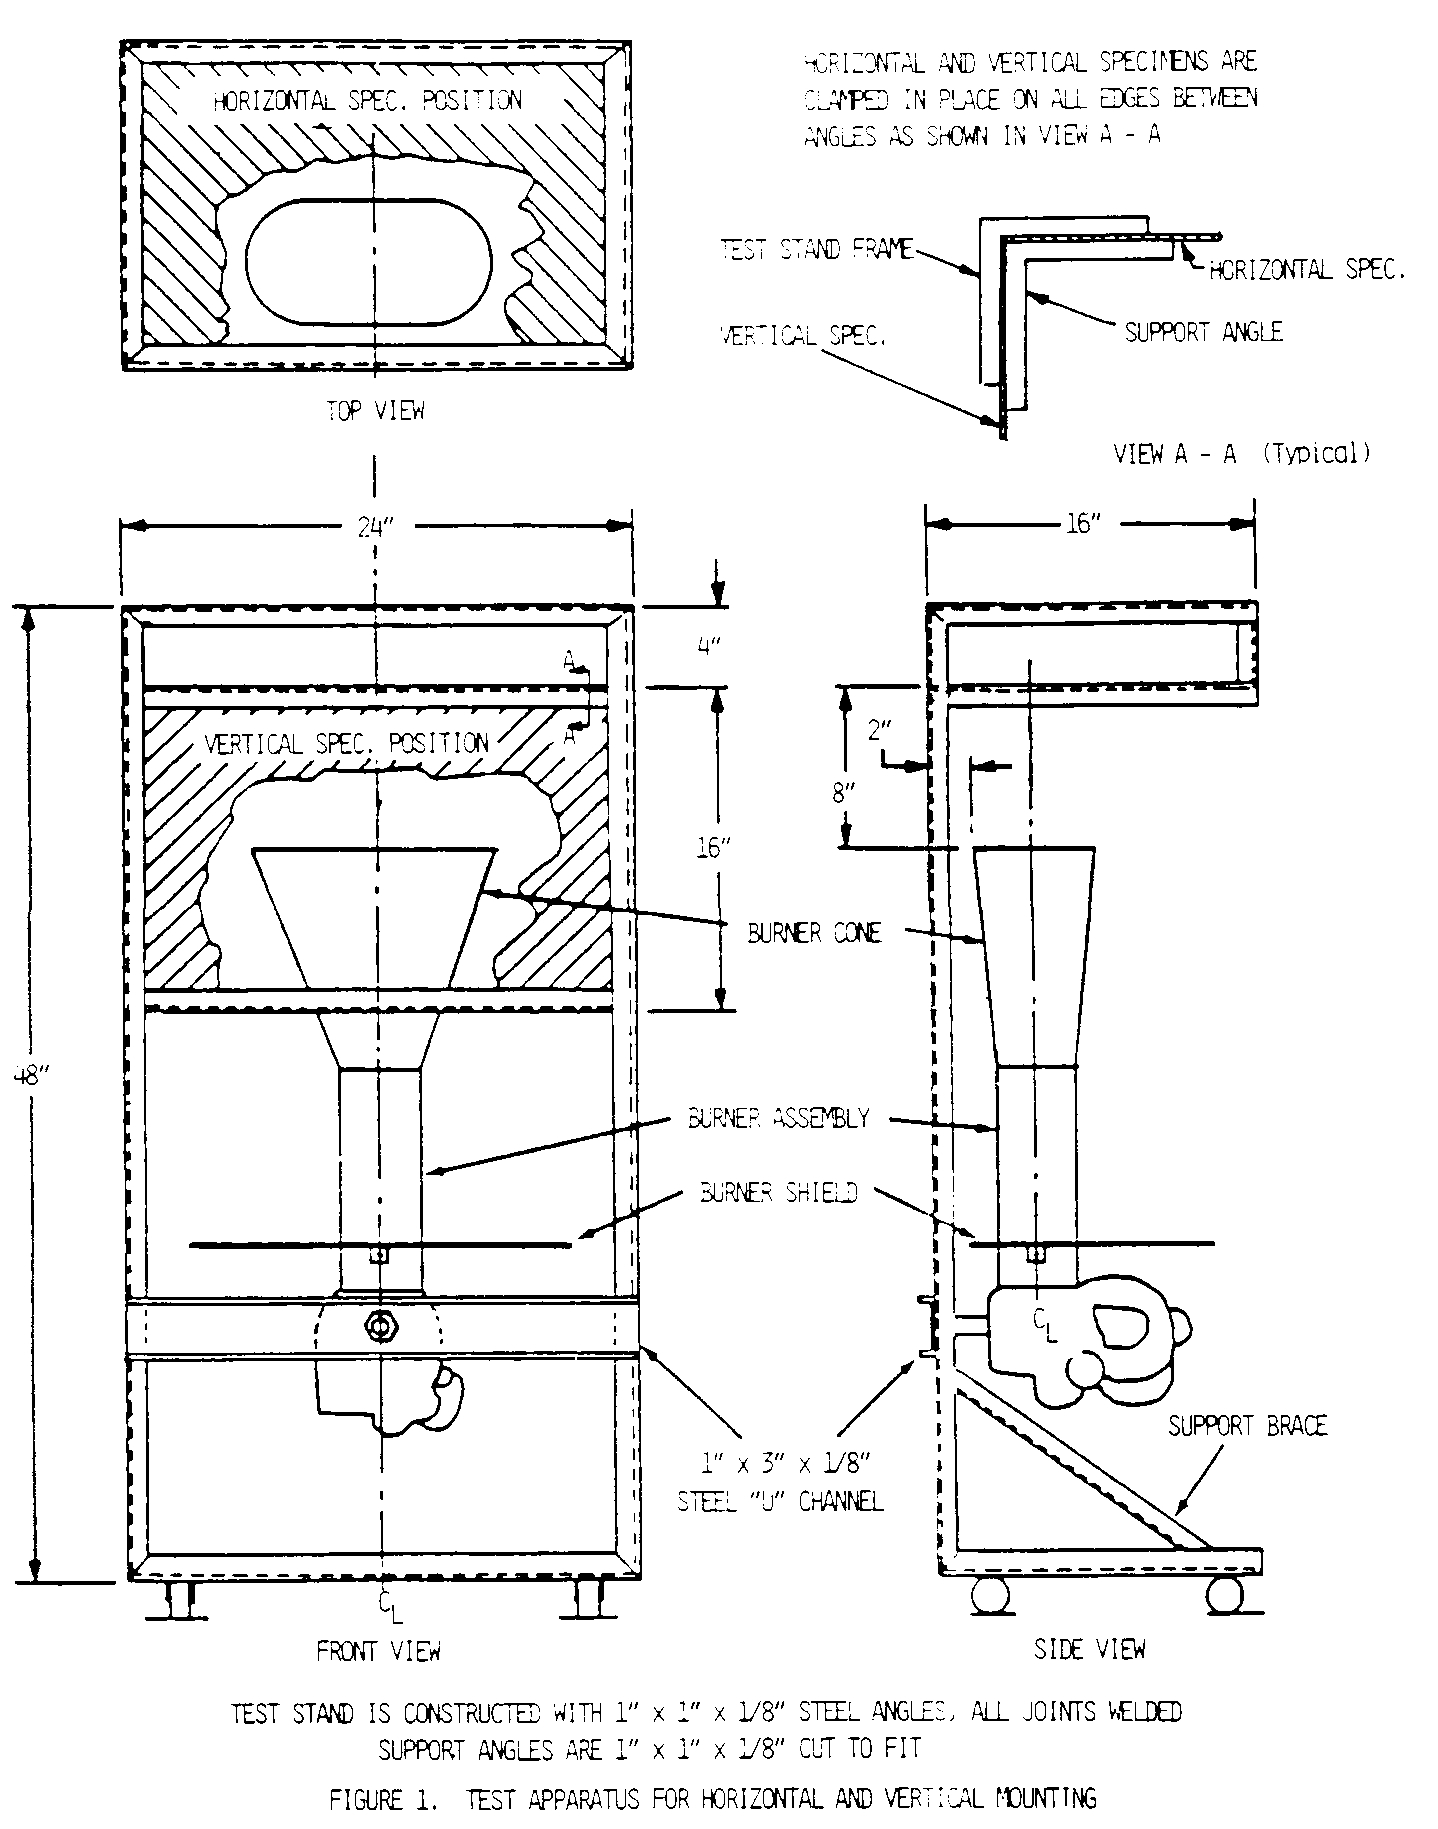 Graphic of (4) Panel orientation (ceiling or sidewall).